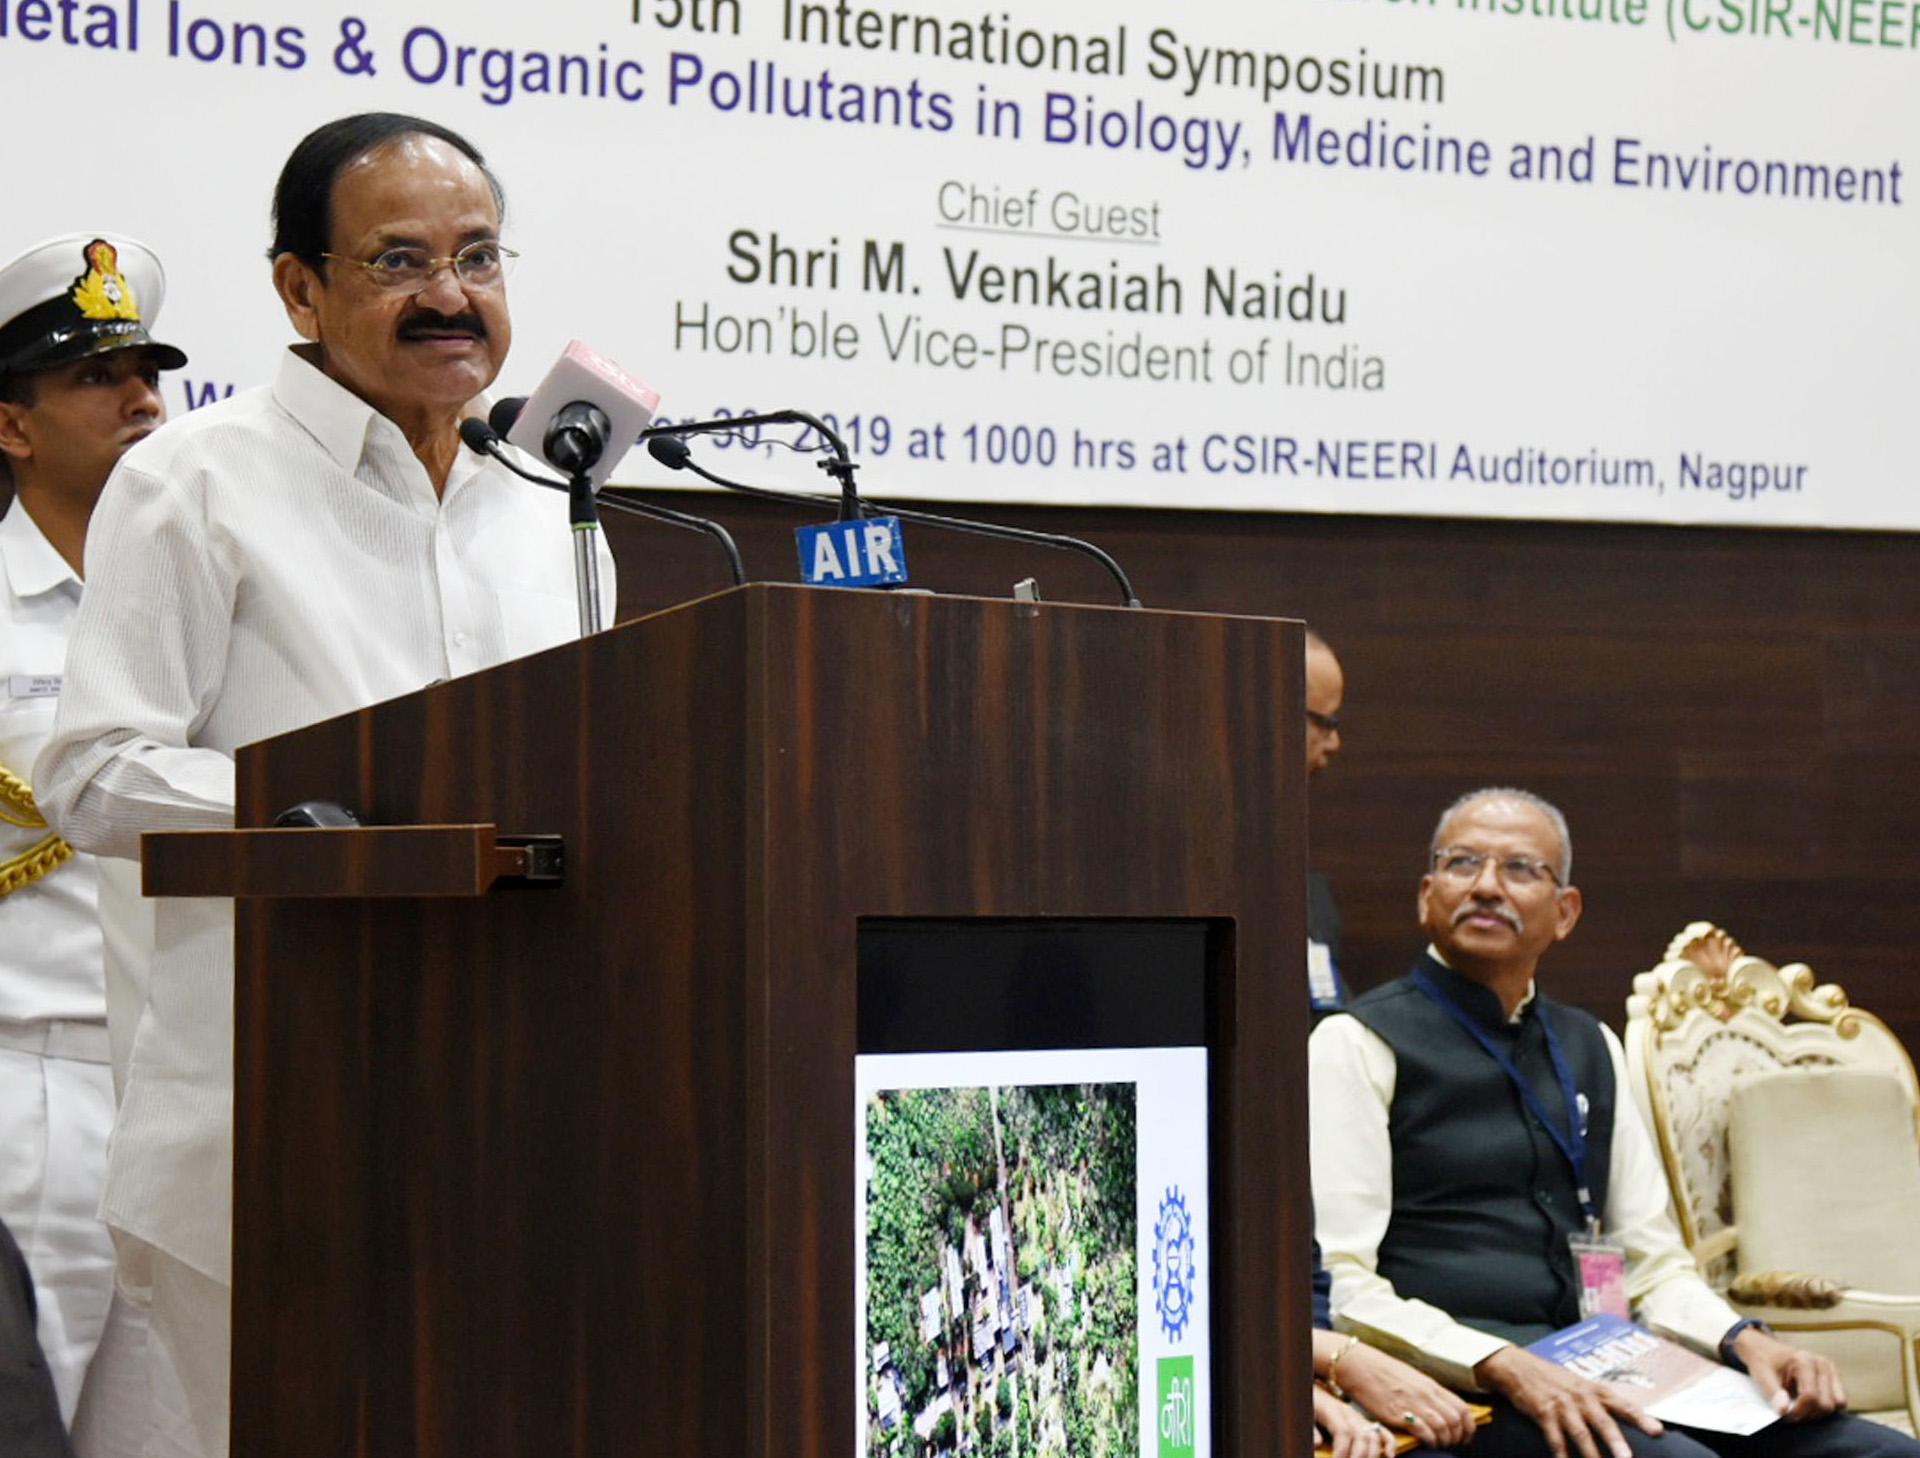 """Vice President, M. Venkaiah Naidu delivering the inaugural address at the 15th International Conference on """"Metal Ions & Organic Pollutants in Biology, Medicine and Environment (Metal Ions 2019)"""", organised by the CSIR-NEERI, in Nagpur on Wednesday."""